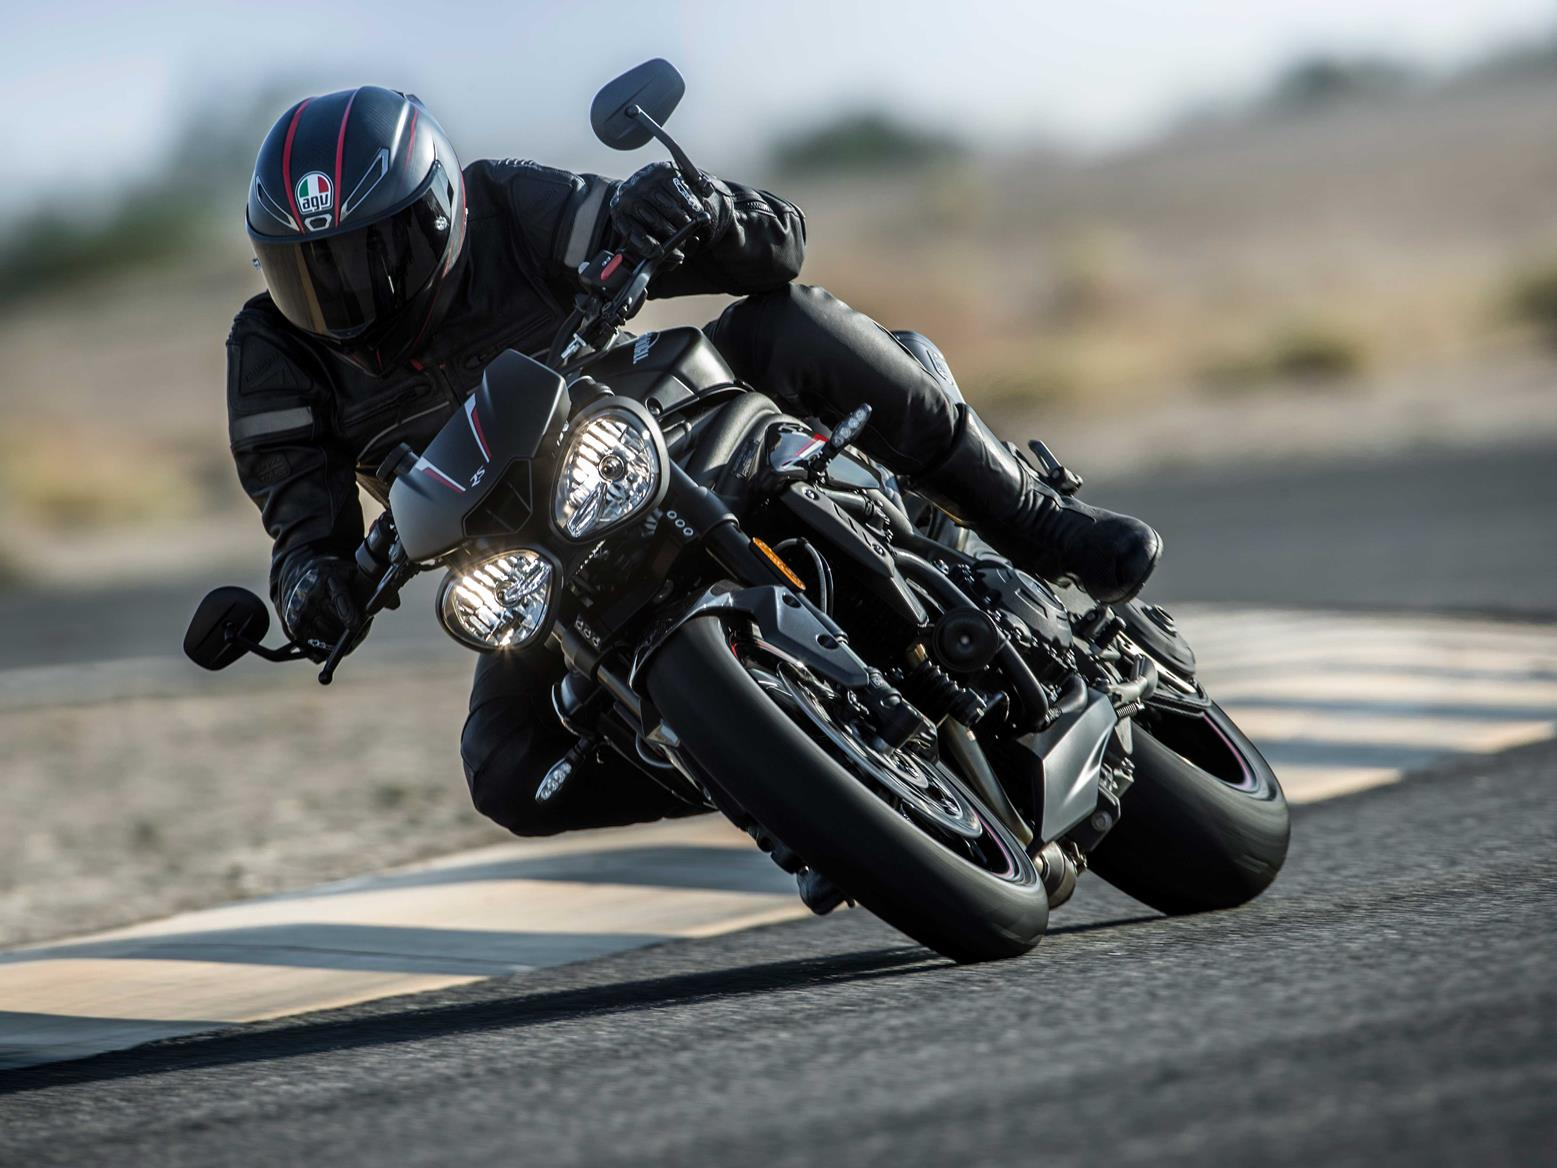 Big, bad and full of torque, the Triumph Speed Triple has a lot to offer